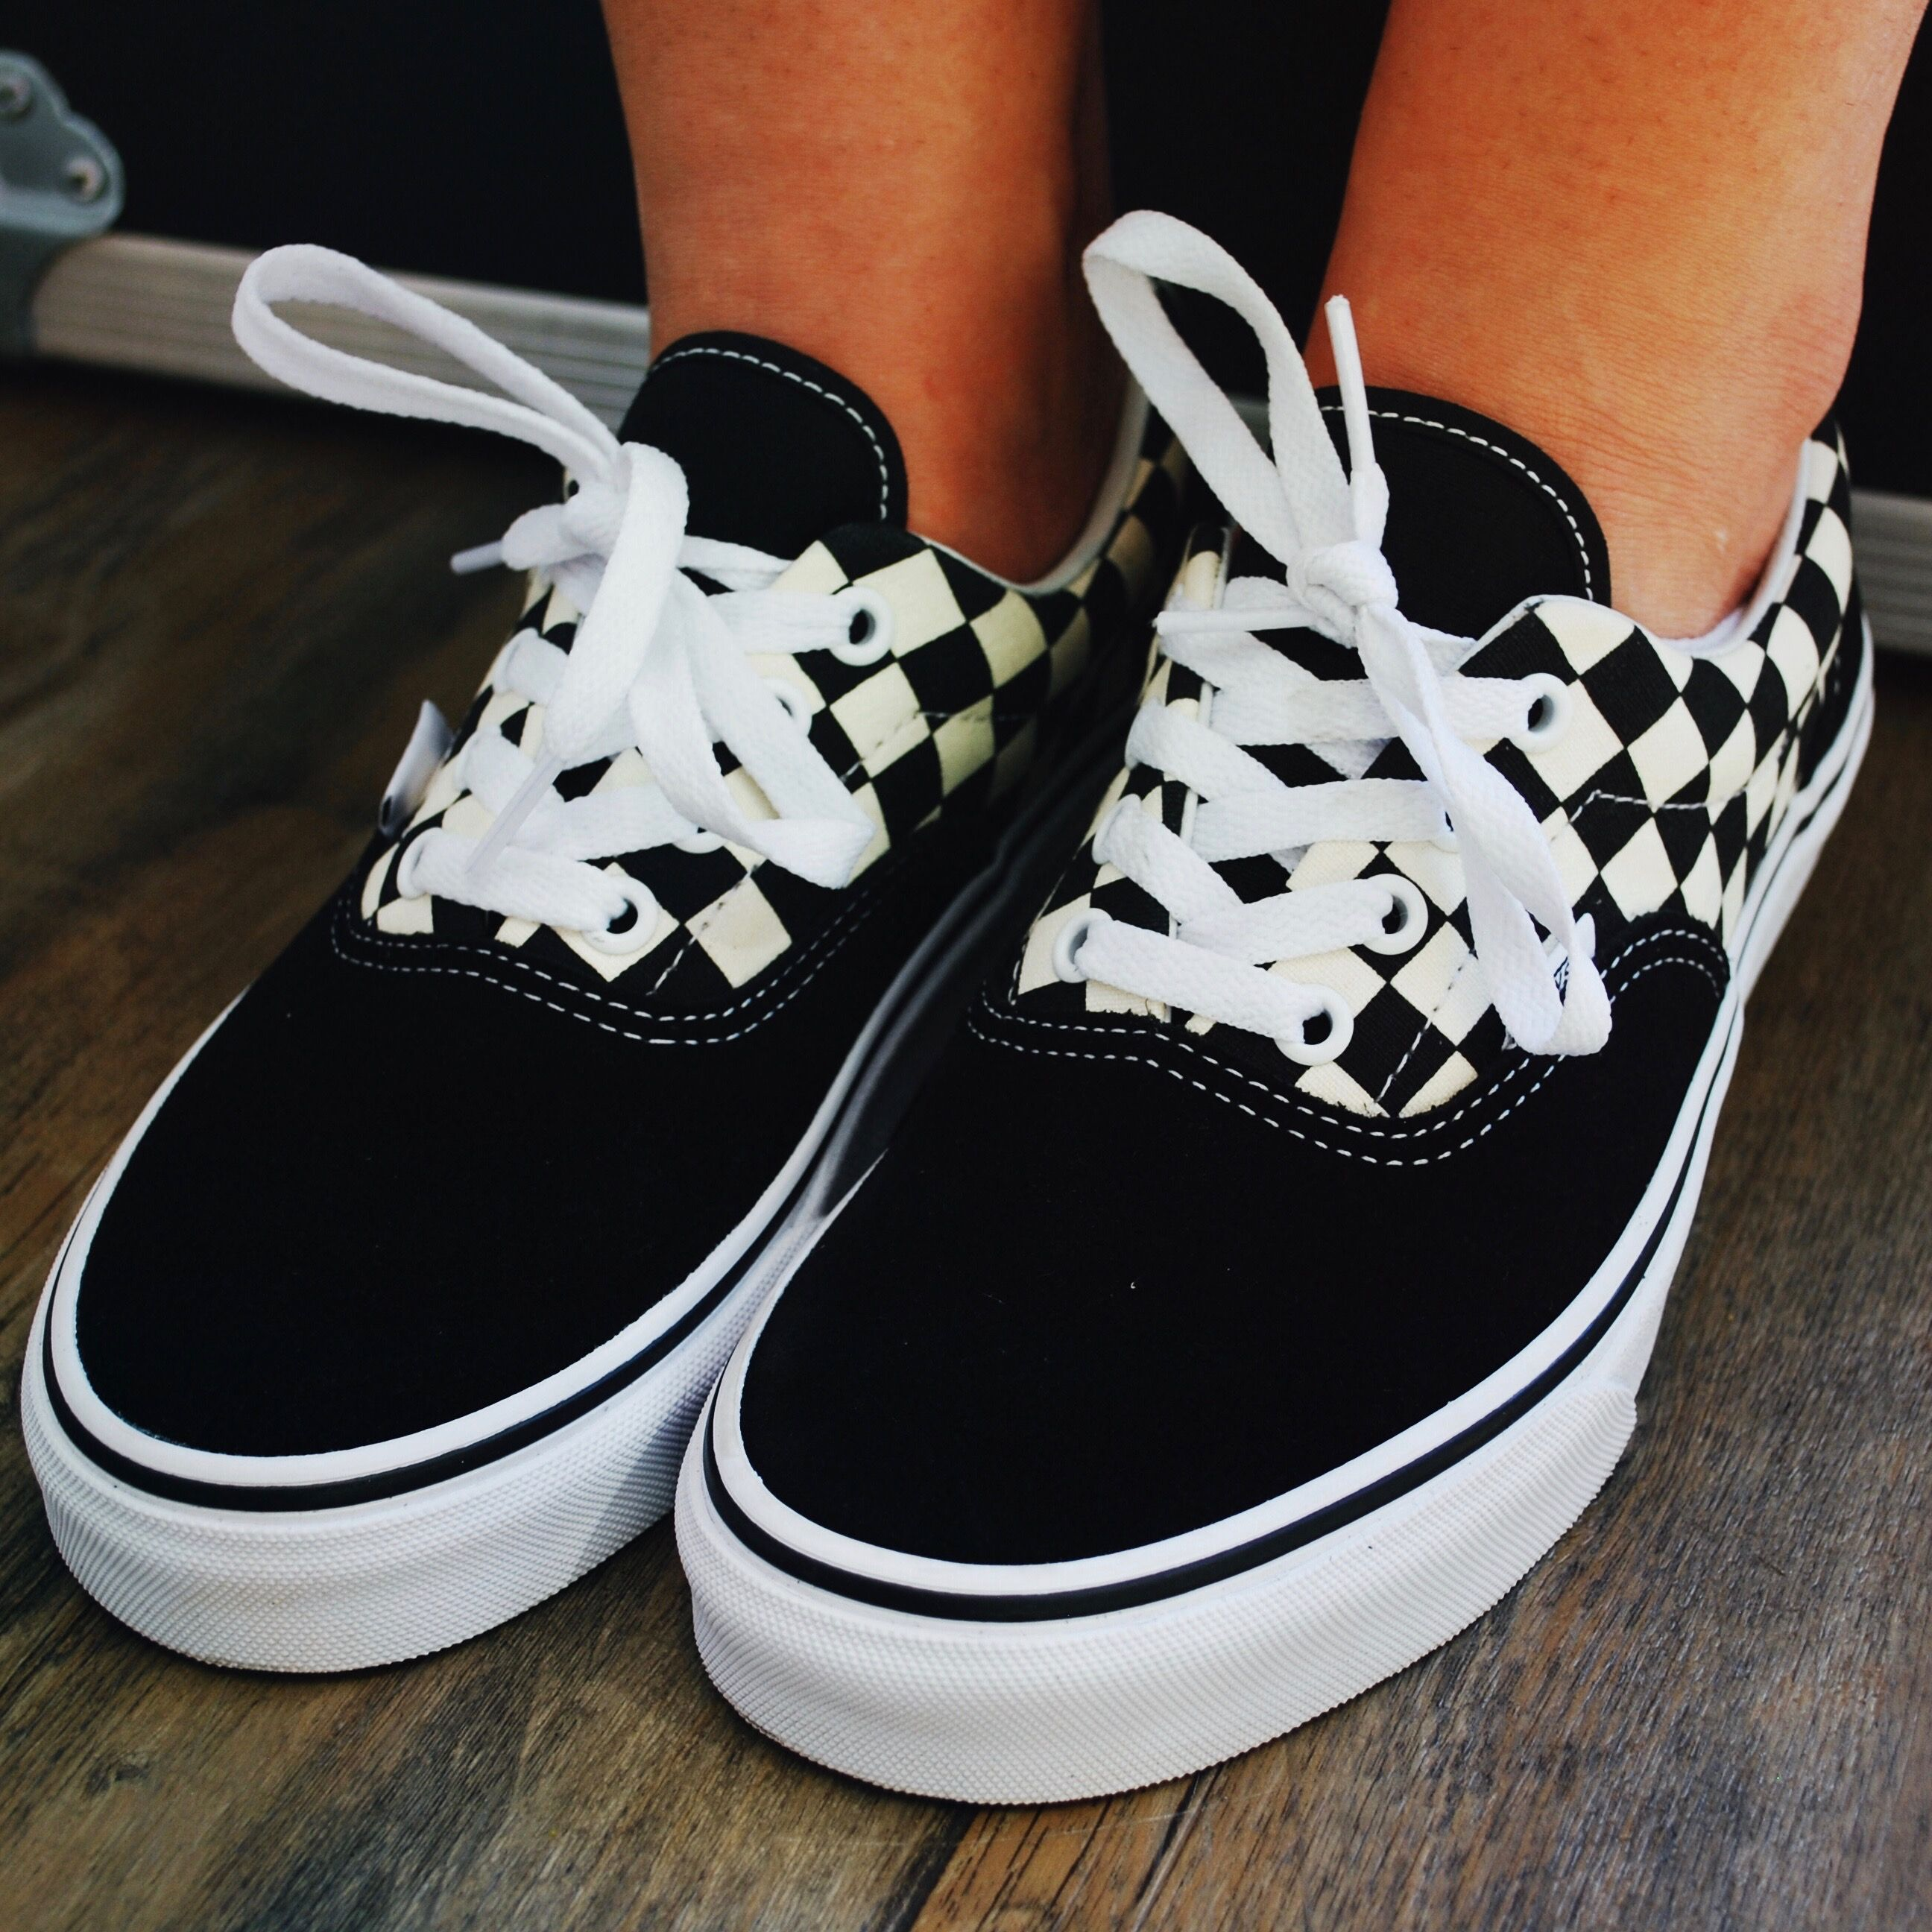 29ed1770d53a The Vans Era that you know and love with a few more aesthetic details. The